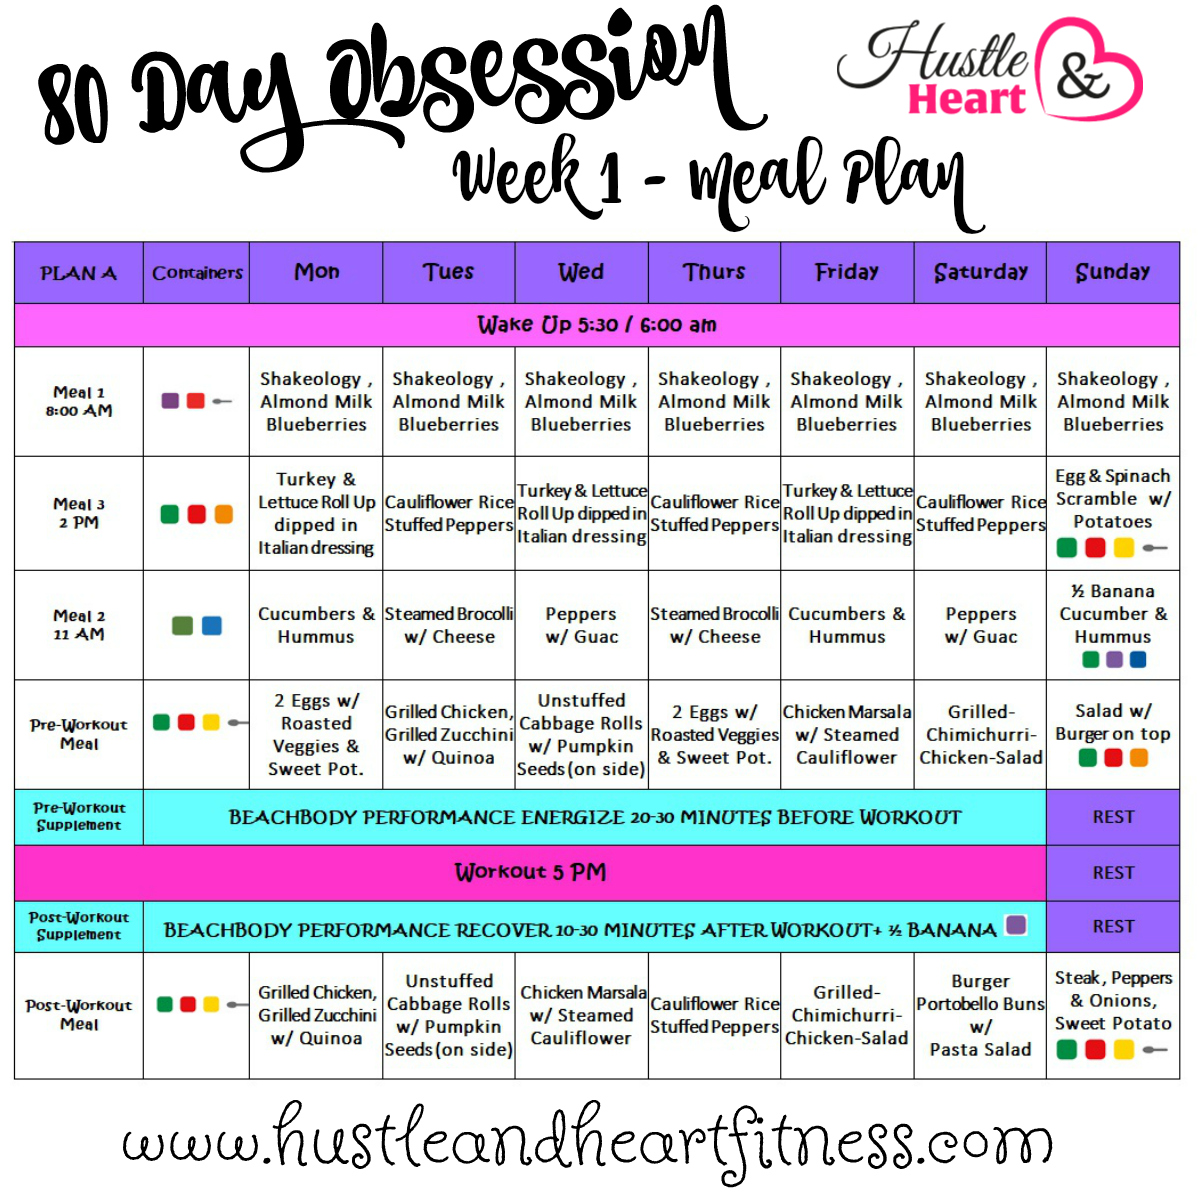 80 day obsession meal plan with recipes tips to keep you on track 80 day obsession meal plan with recipes tips to keep you on track fix friendly recipes and tips united states hustle heart fitness fandeluxe Image collections